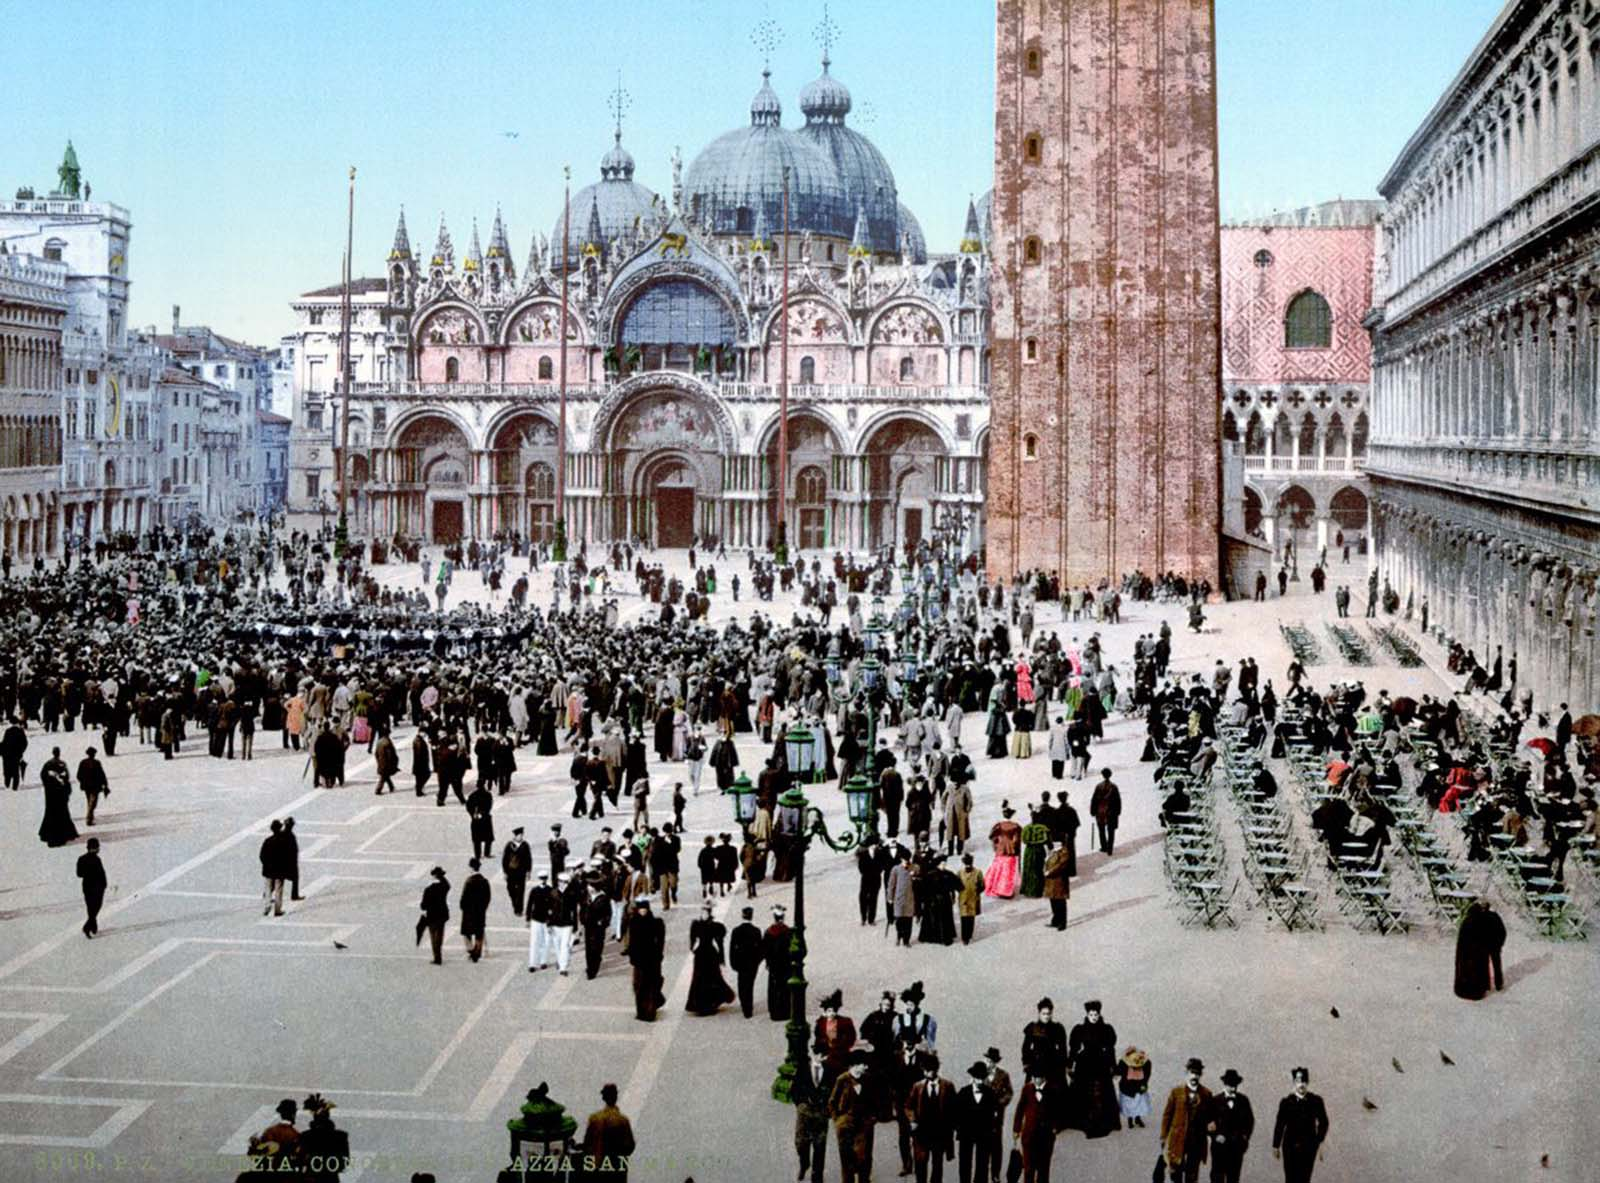 venice-in-beautiful-old-color-images-1890_7.jpg